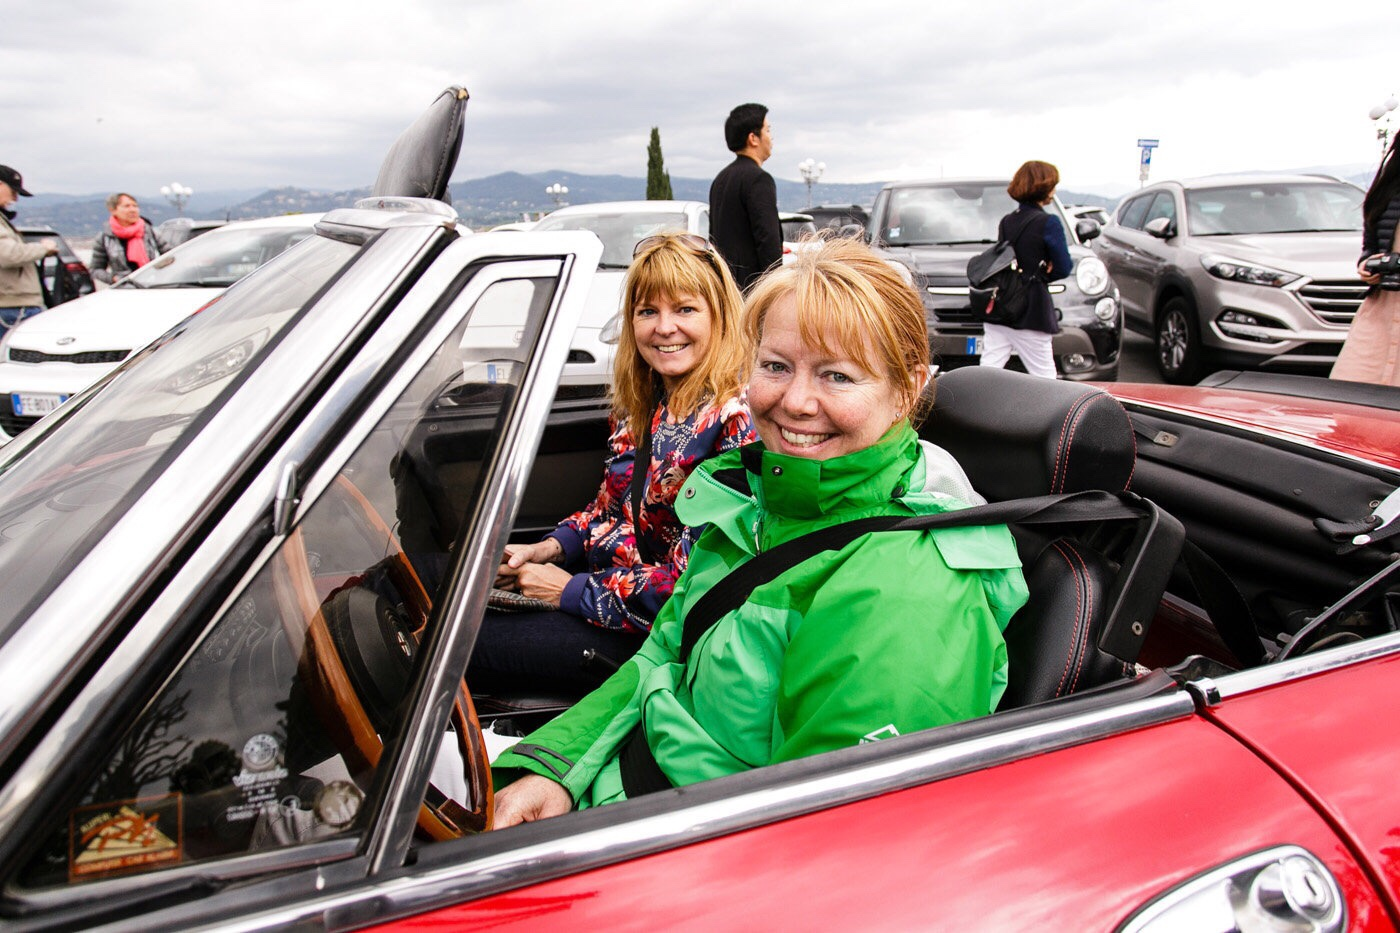 Janet Simmonds at the wheel - help!